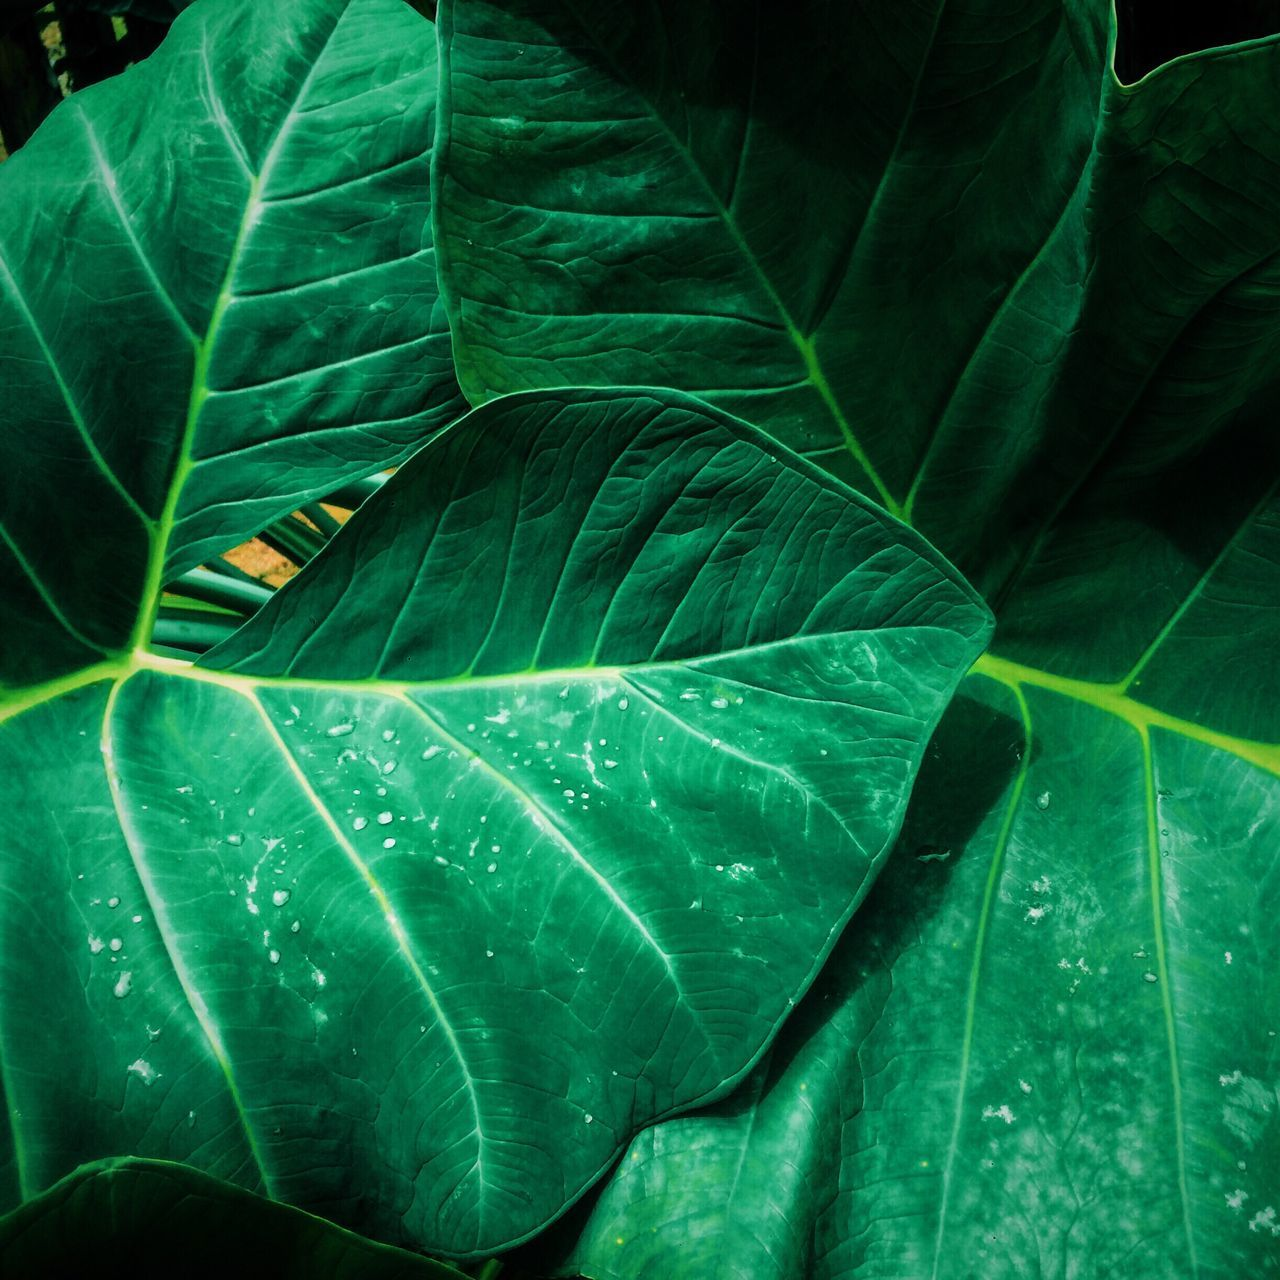 leaf, green color, nature, close-up, no people, day, growth, outdoors, freshness, beauty in nature, banana tree, banana leaf